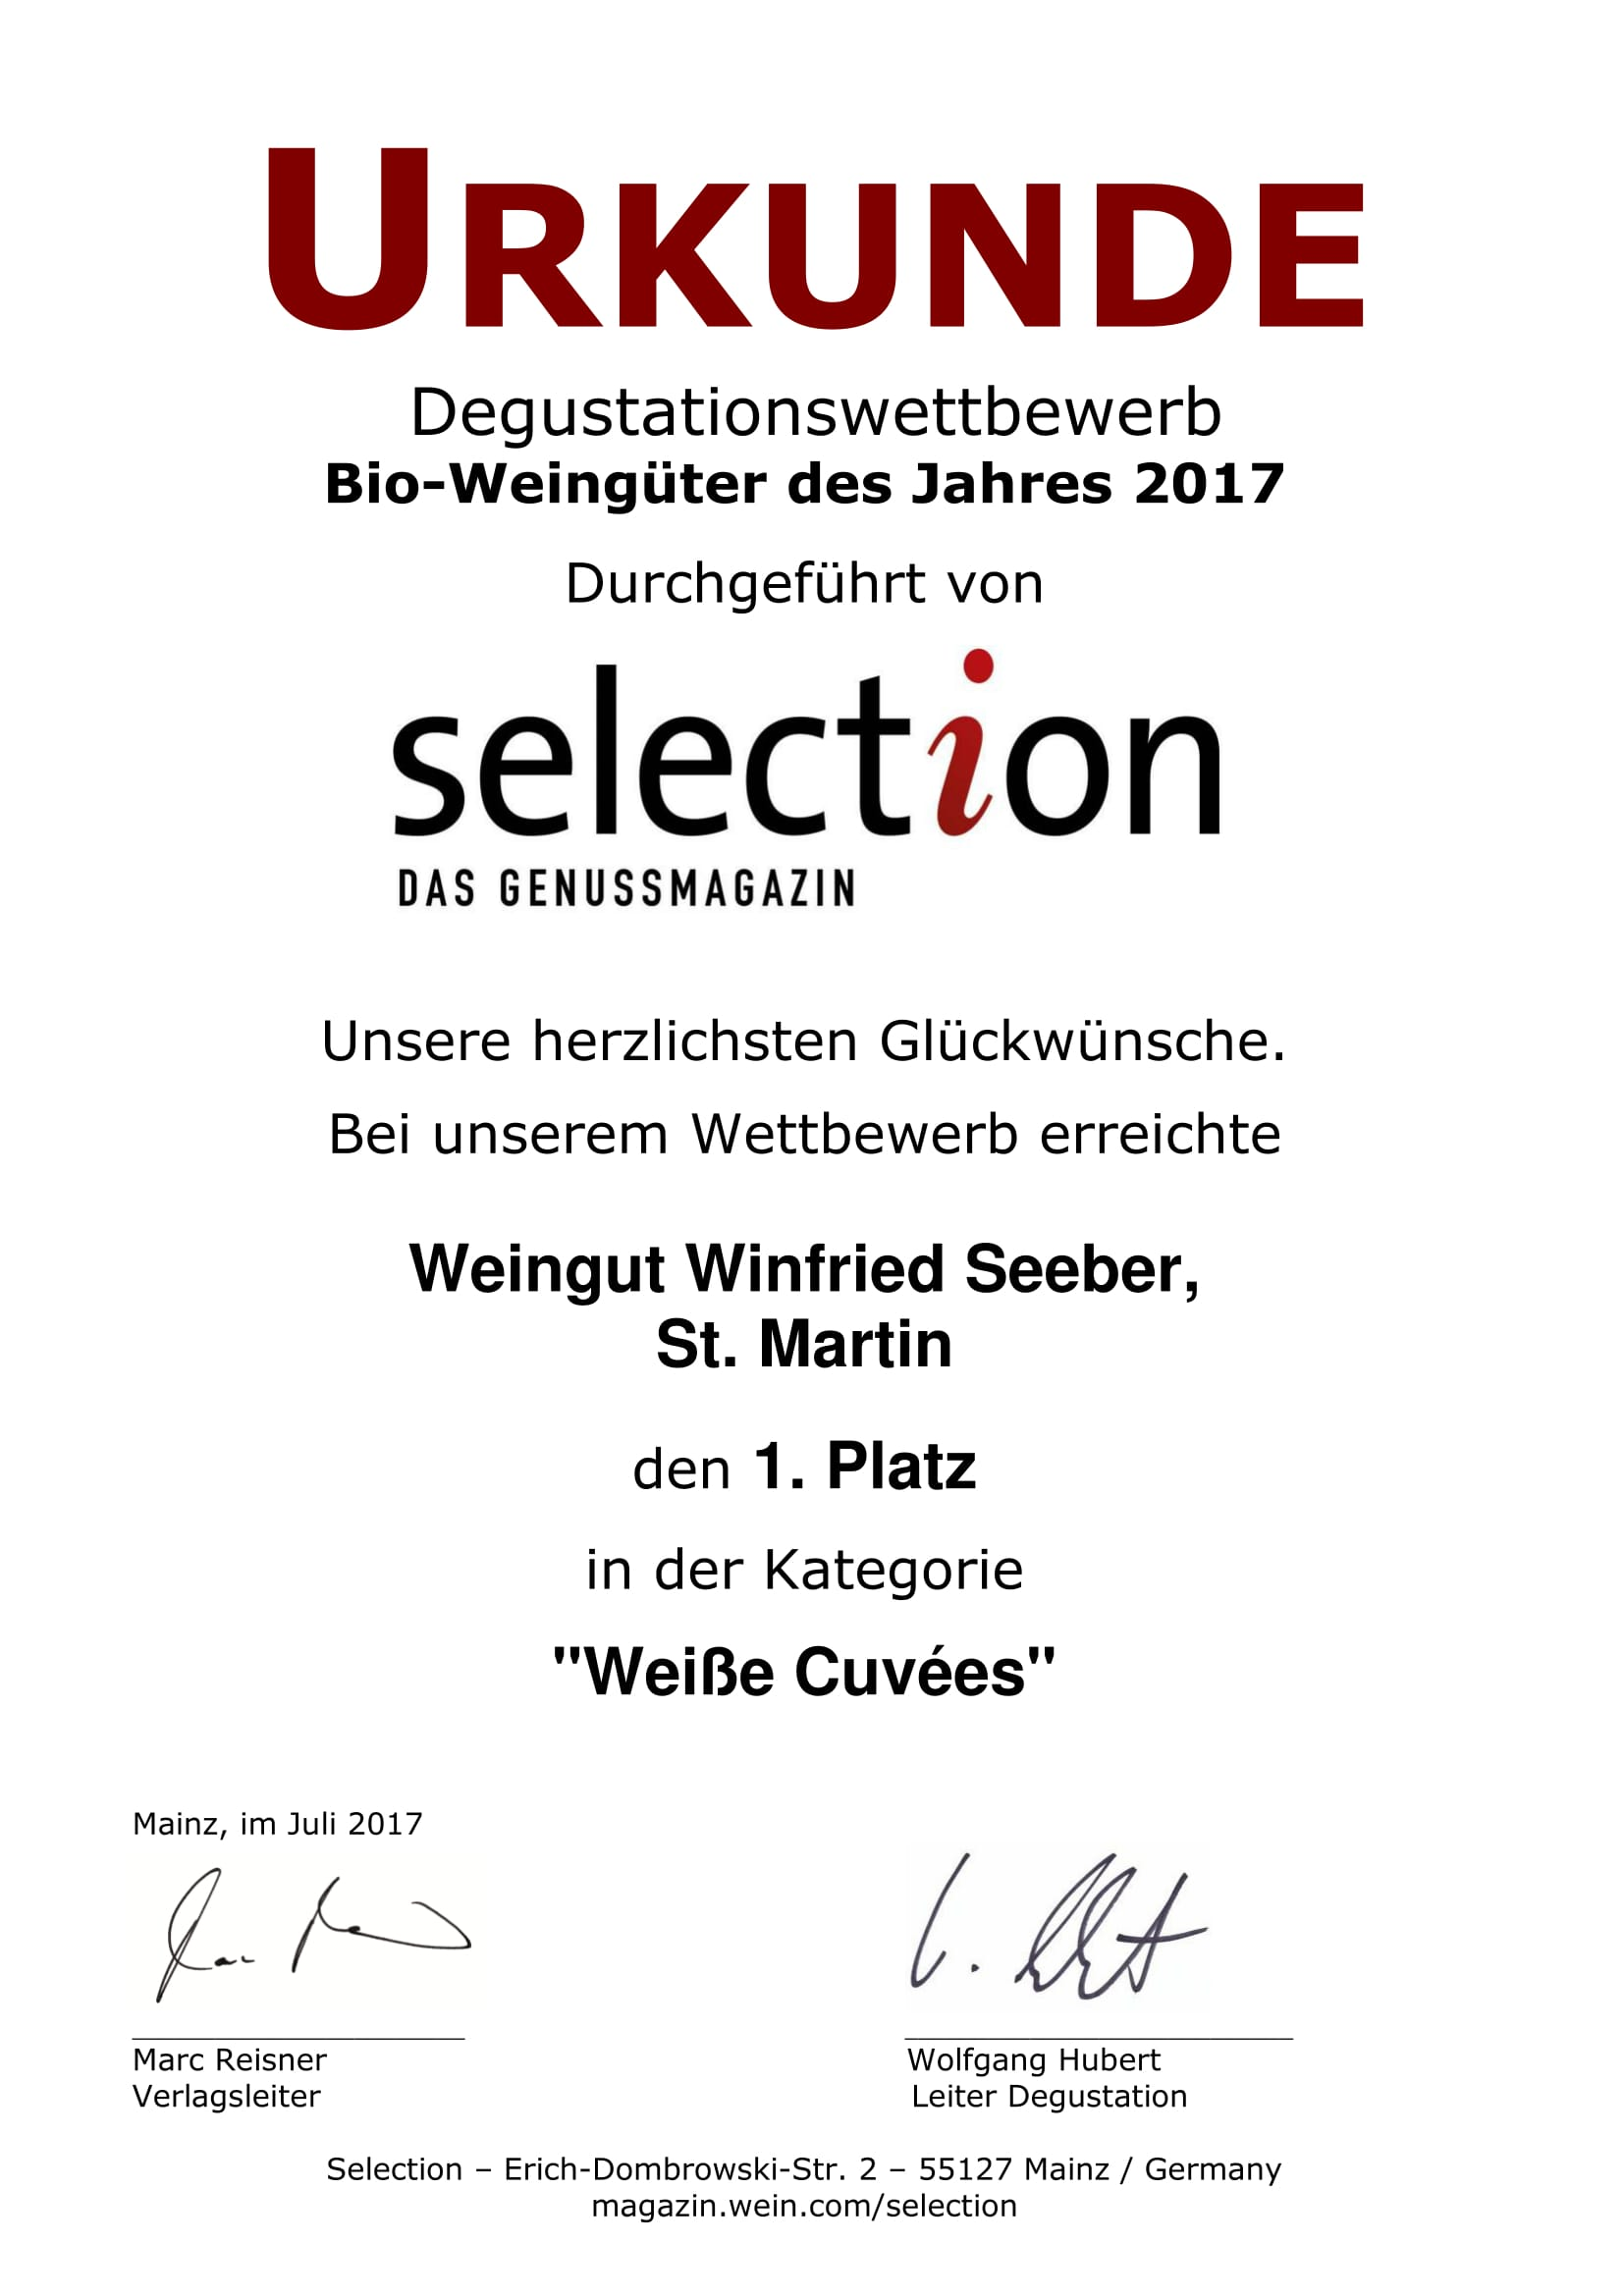 Urkunde selection 2017